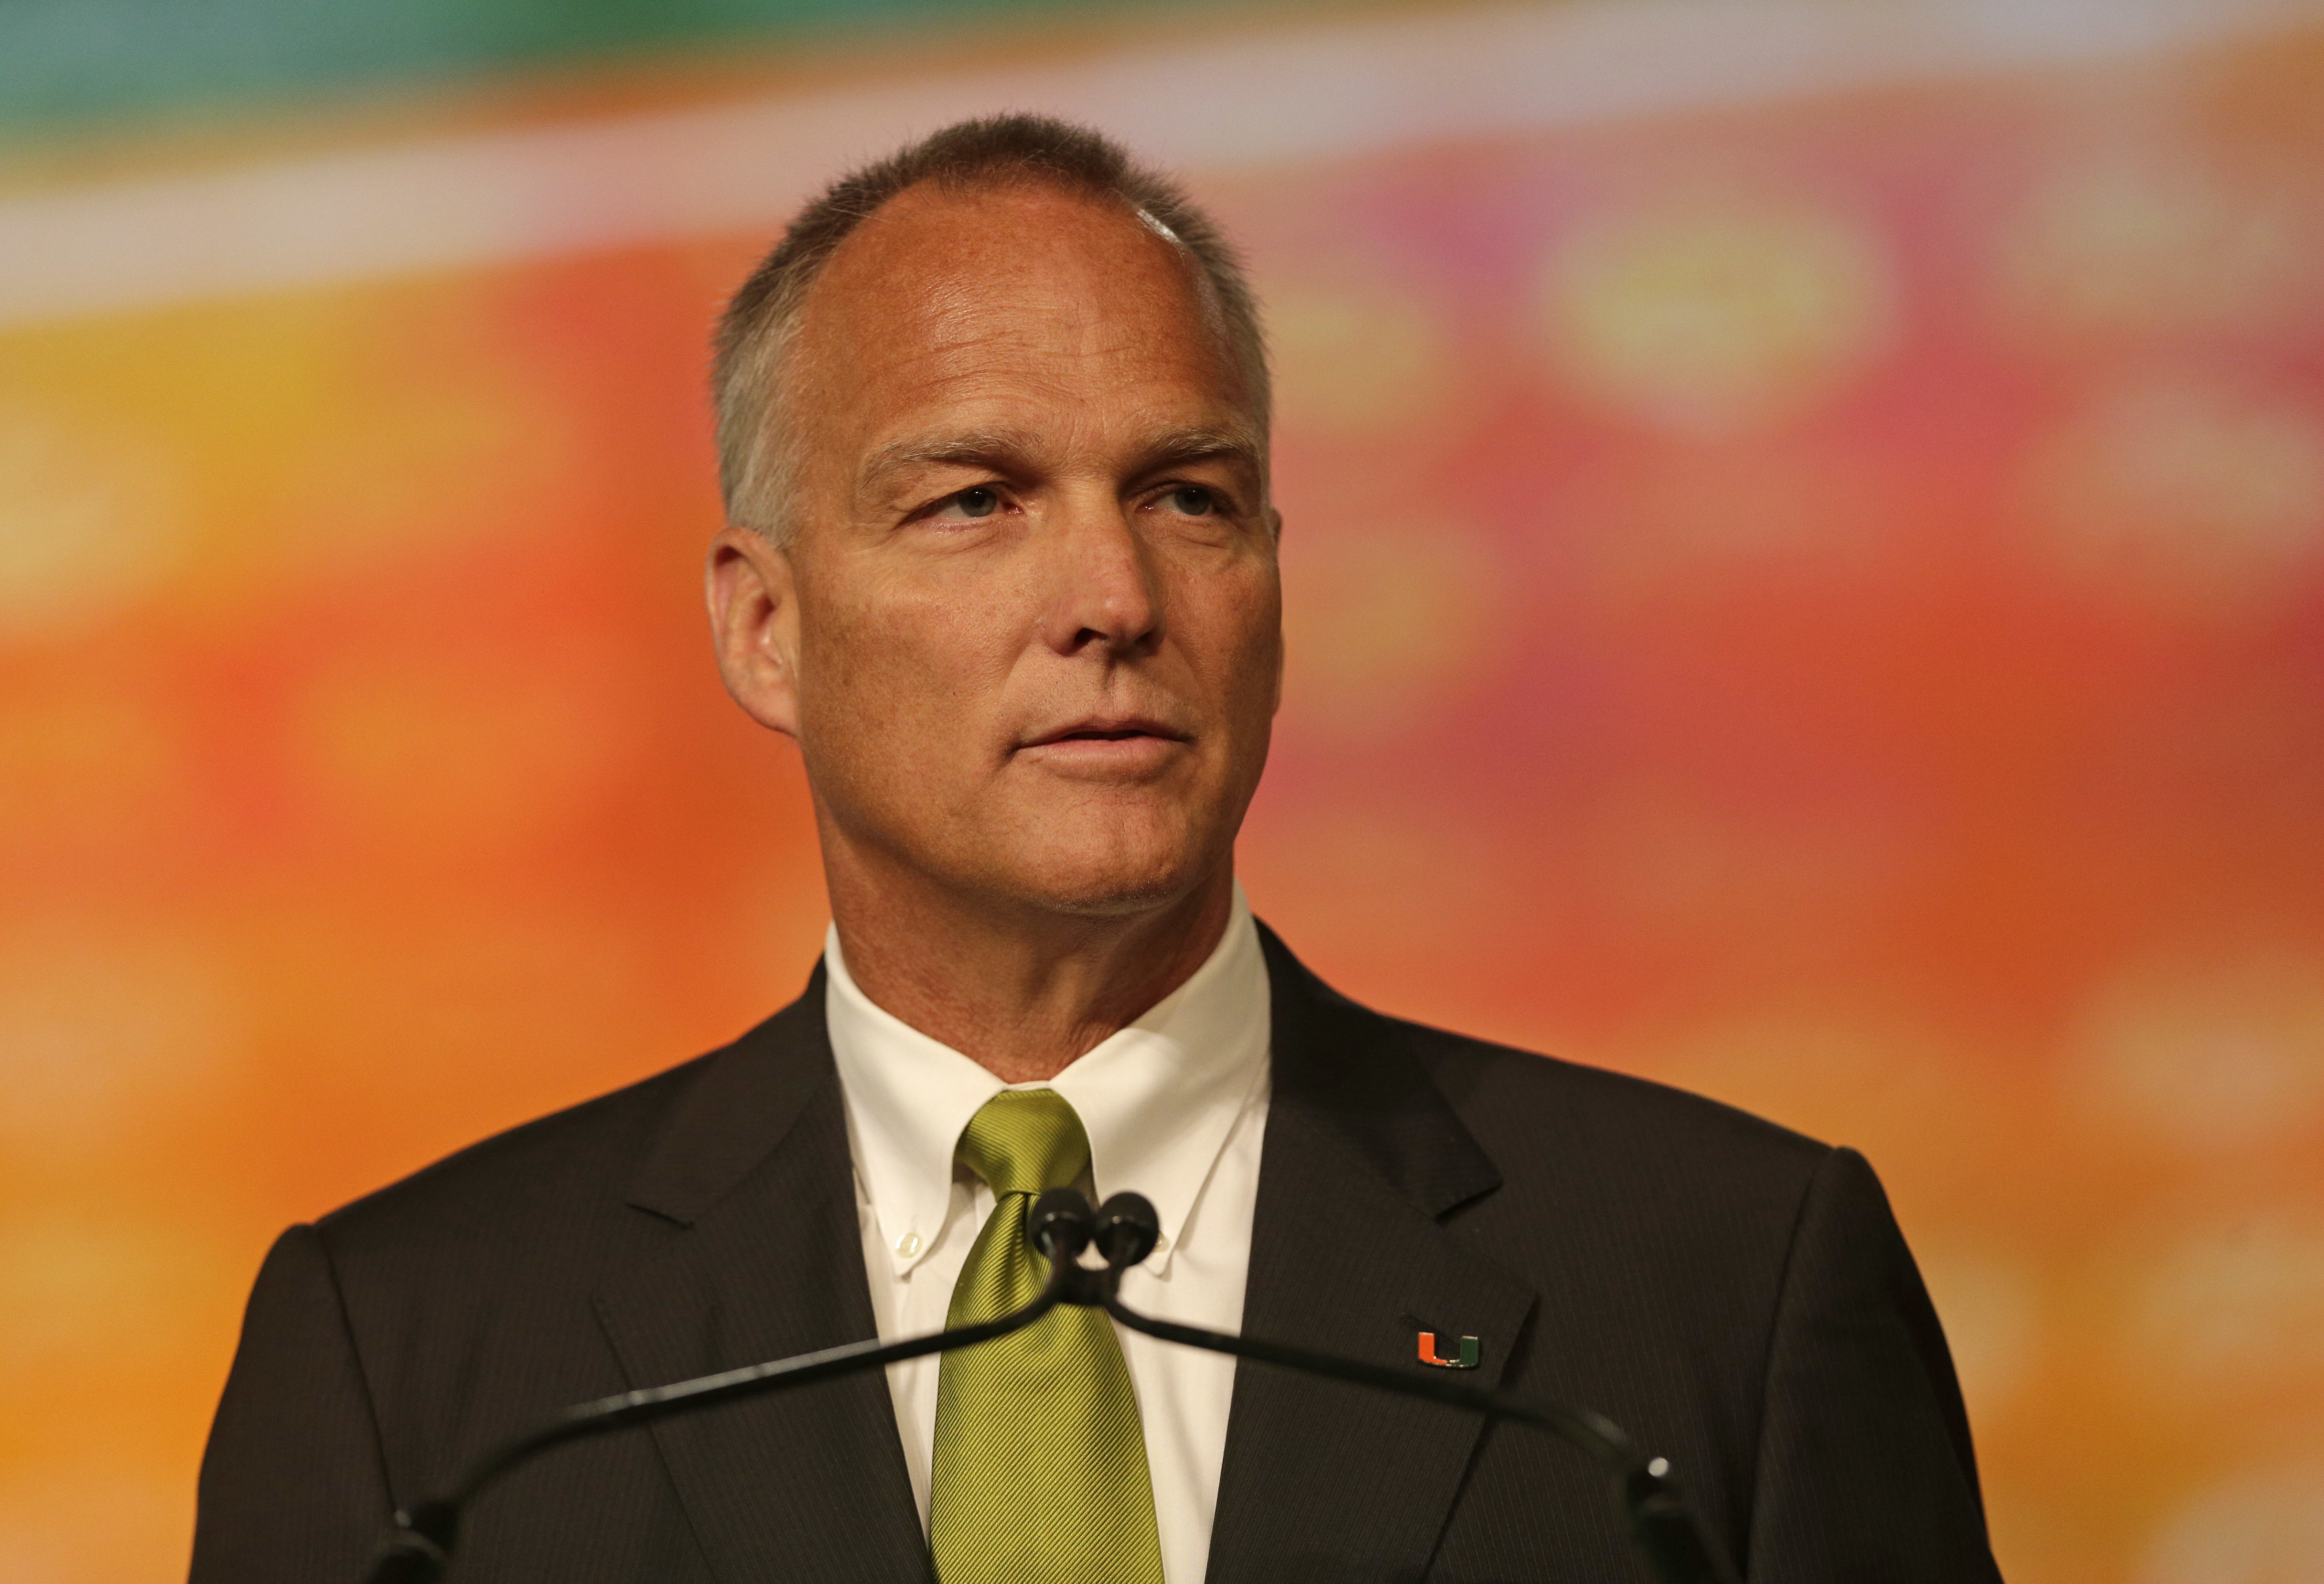 Miami head coach Mark Richt speaks during a news conference at the Atlantic Coast Conference Football Kickoff in Charlotte, N.C., Thursday, July 21, 2016. (AP Photo/Chuck Burton)